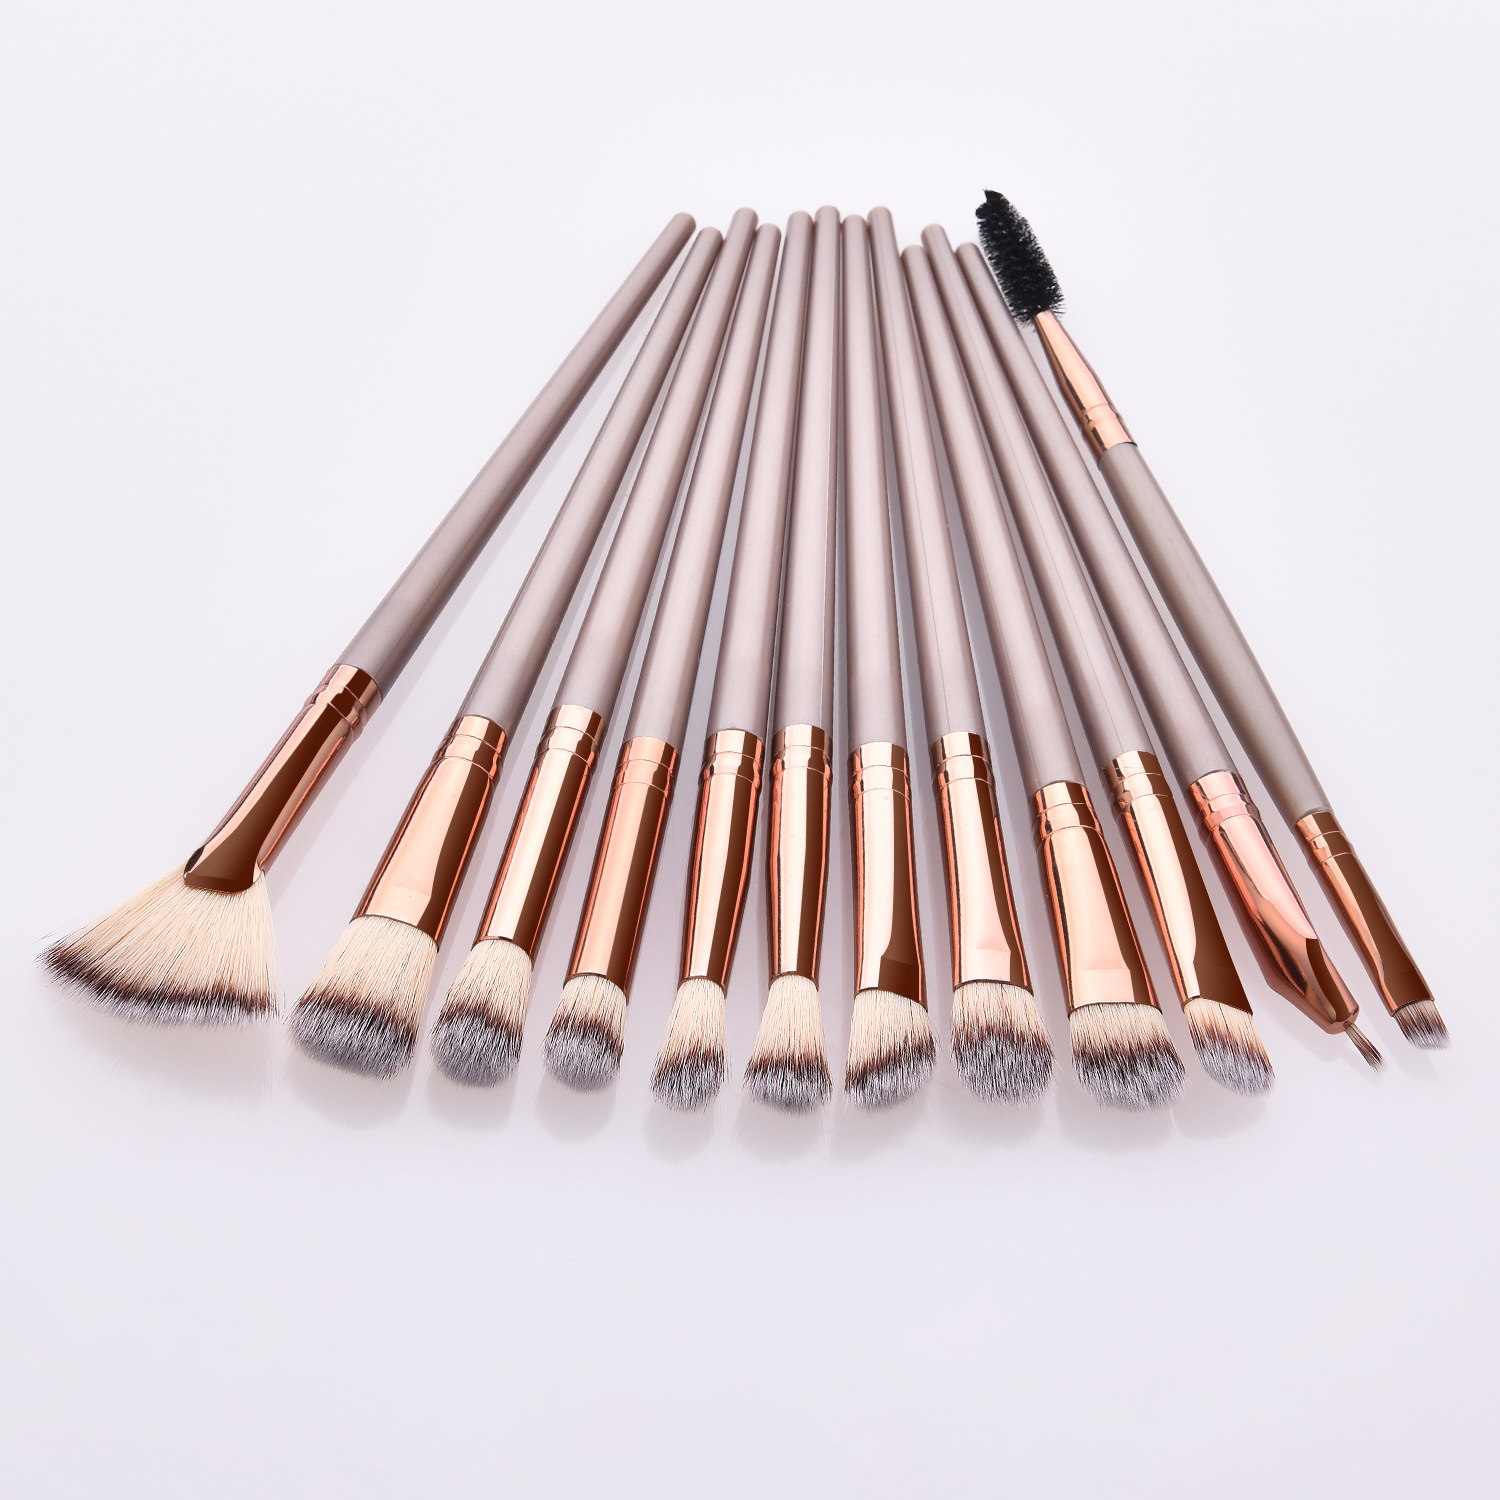 Makeup Brushes Set 3/5/12pcs/lot Eye Shadow Blending Eyeliner Eyelash Eyebrow Make Up Brushes Professional Eyeshadow Brush